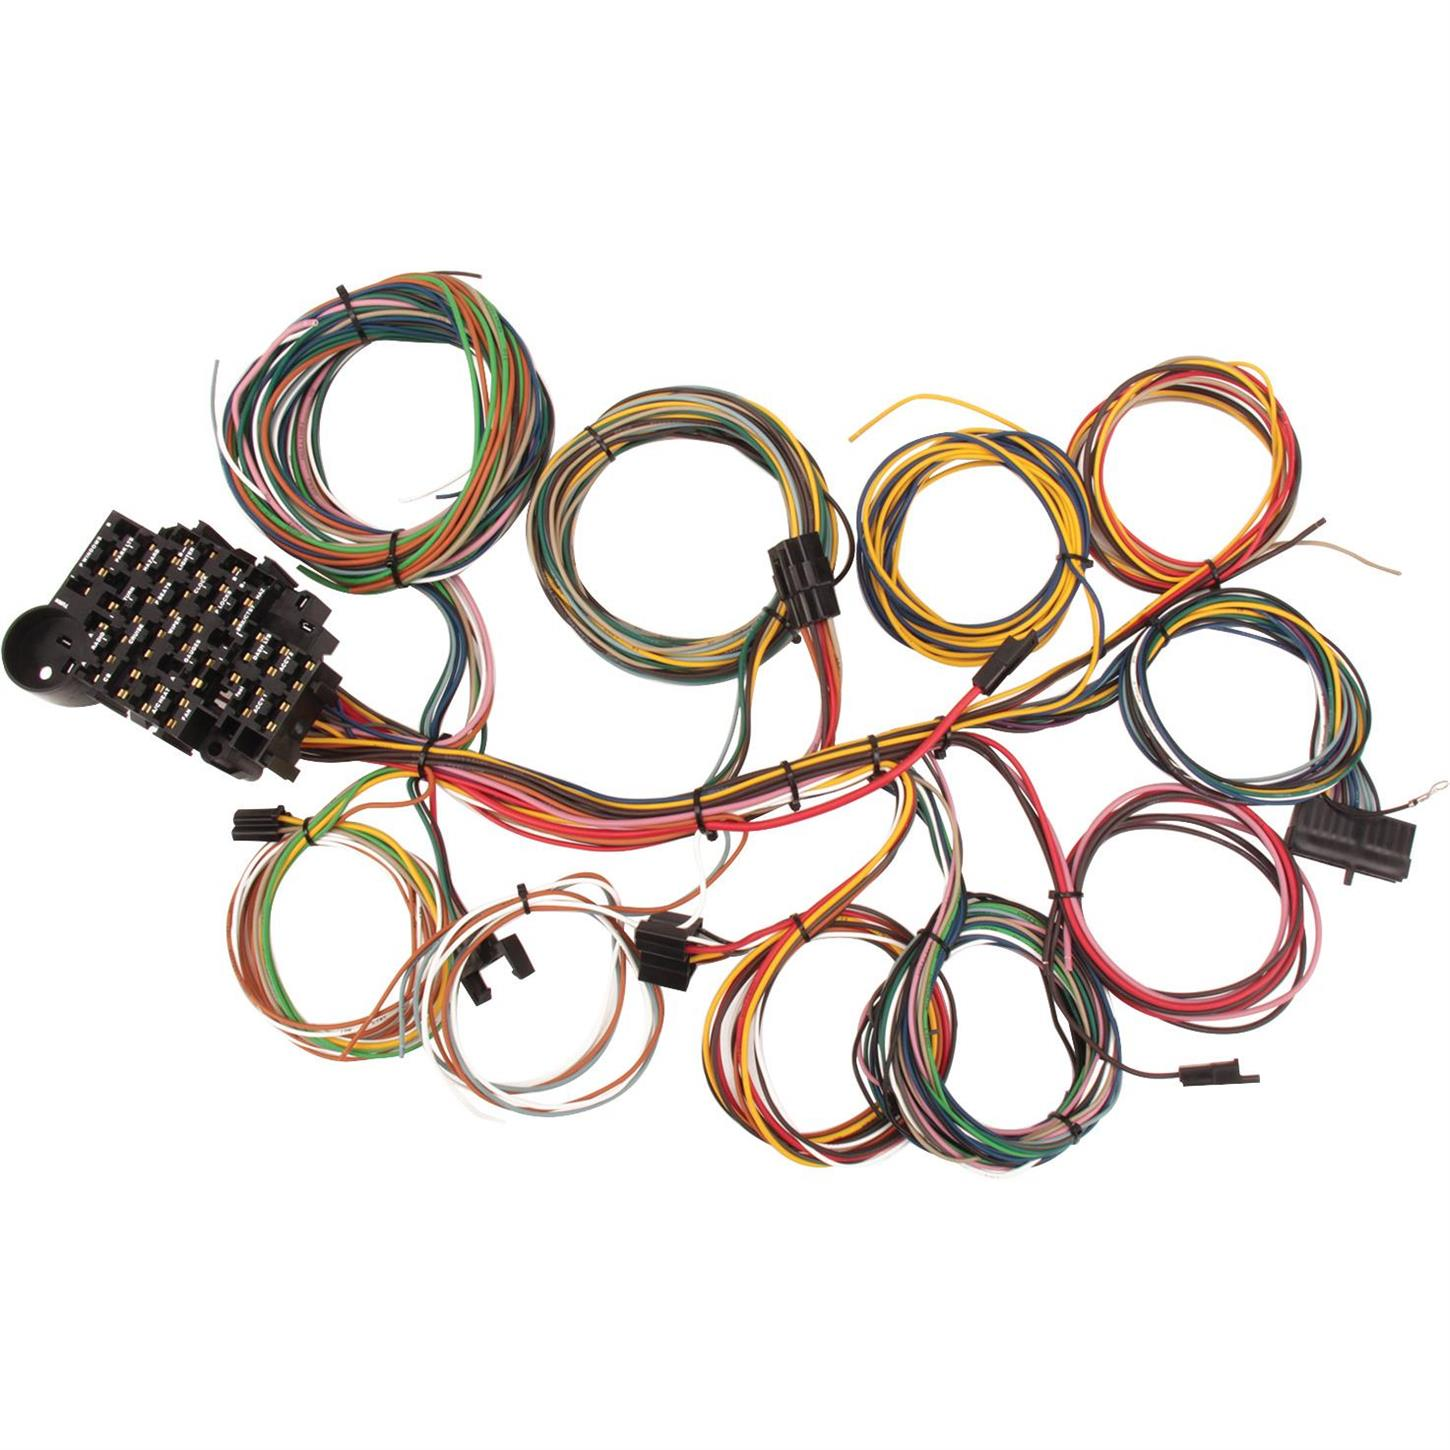 91064022_L1450_4a5a9e43 cdd2 4b2c 9c68 457f296054bd selecting a wiring harness for your street rod  at pacquiaovsvargaslive.co